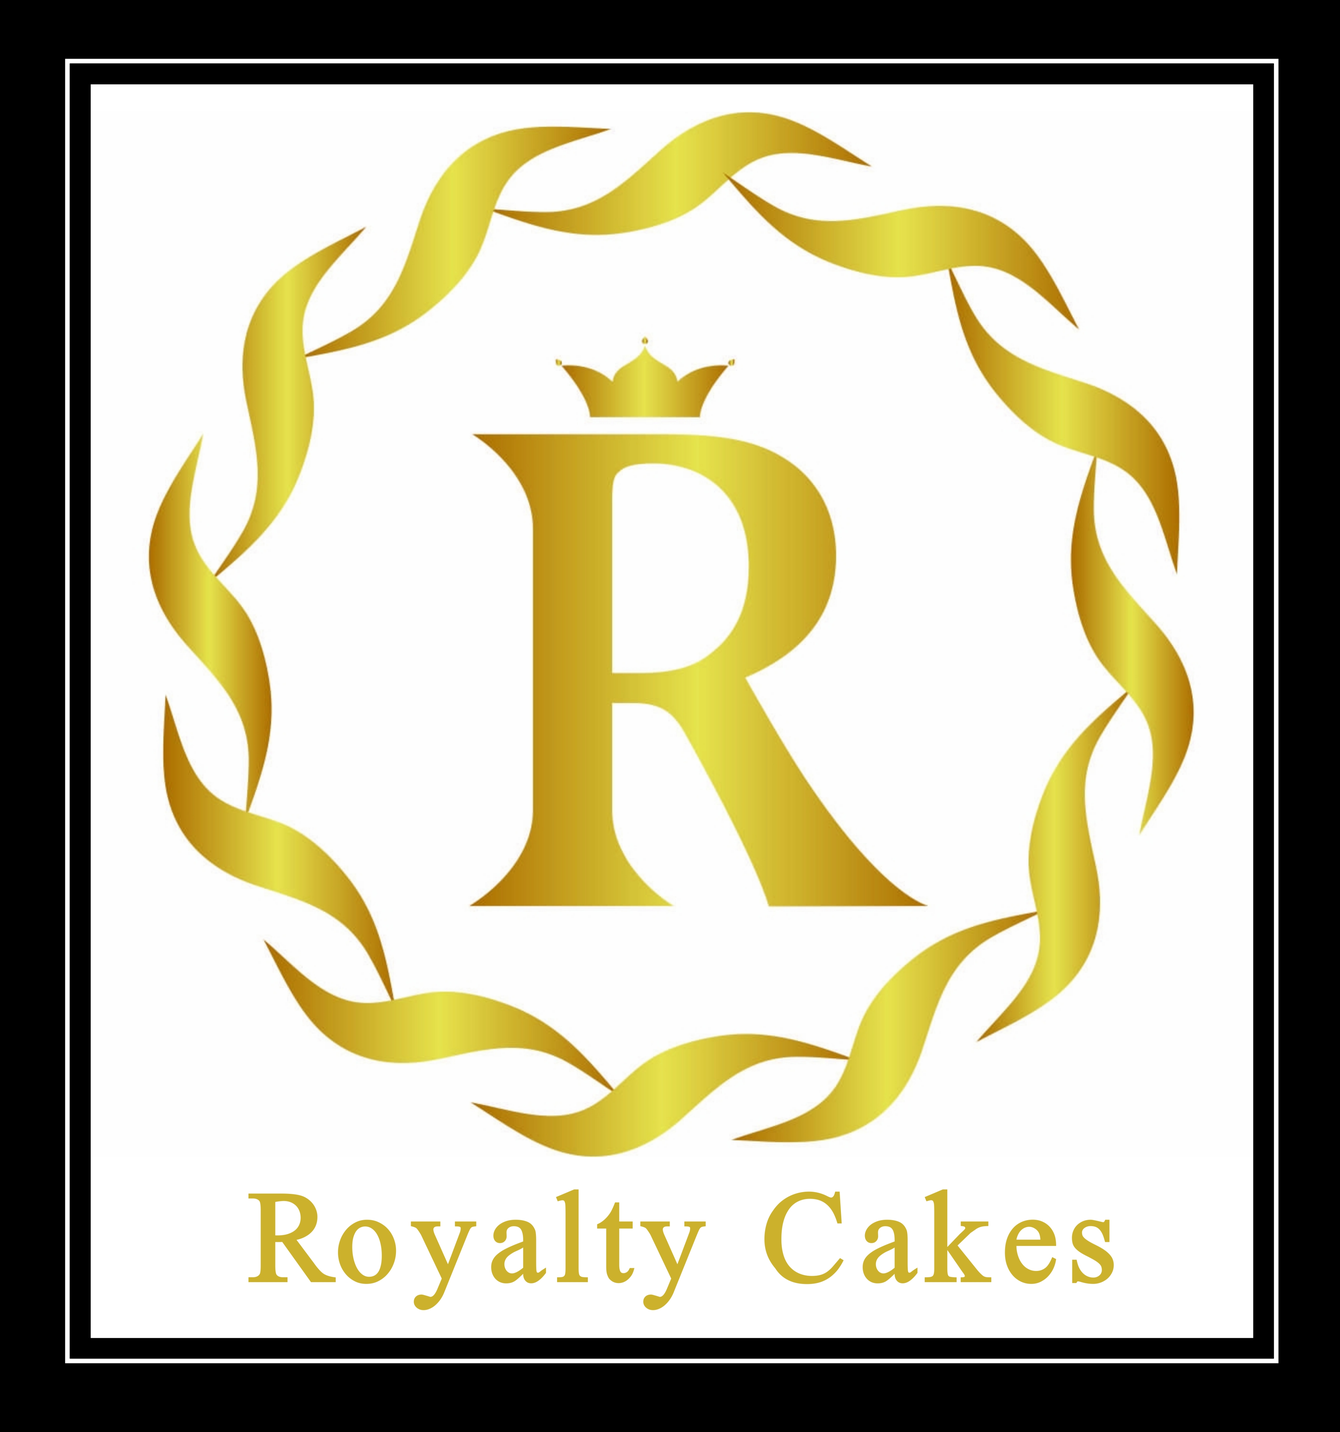 Royalty Cakes